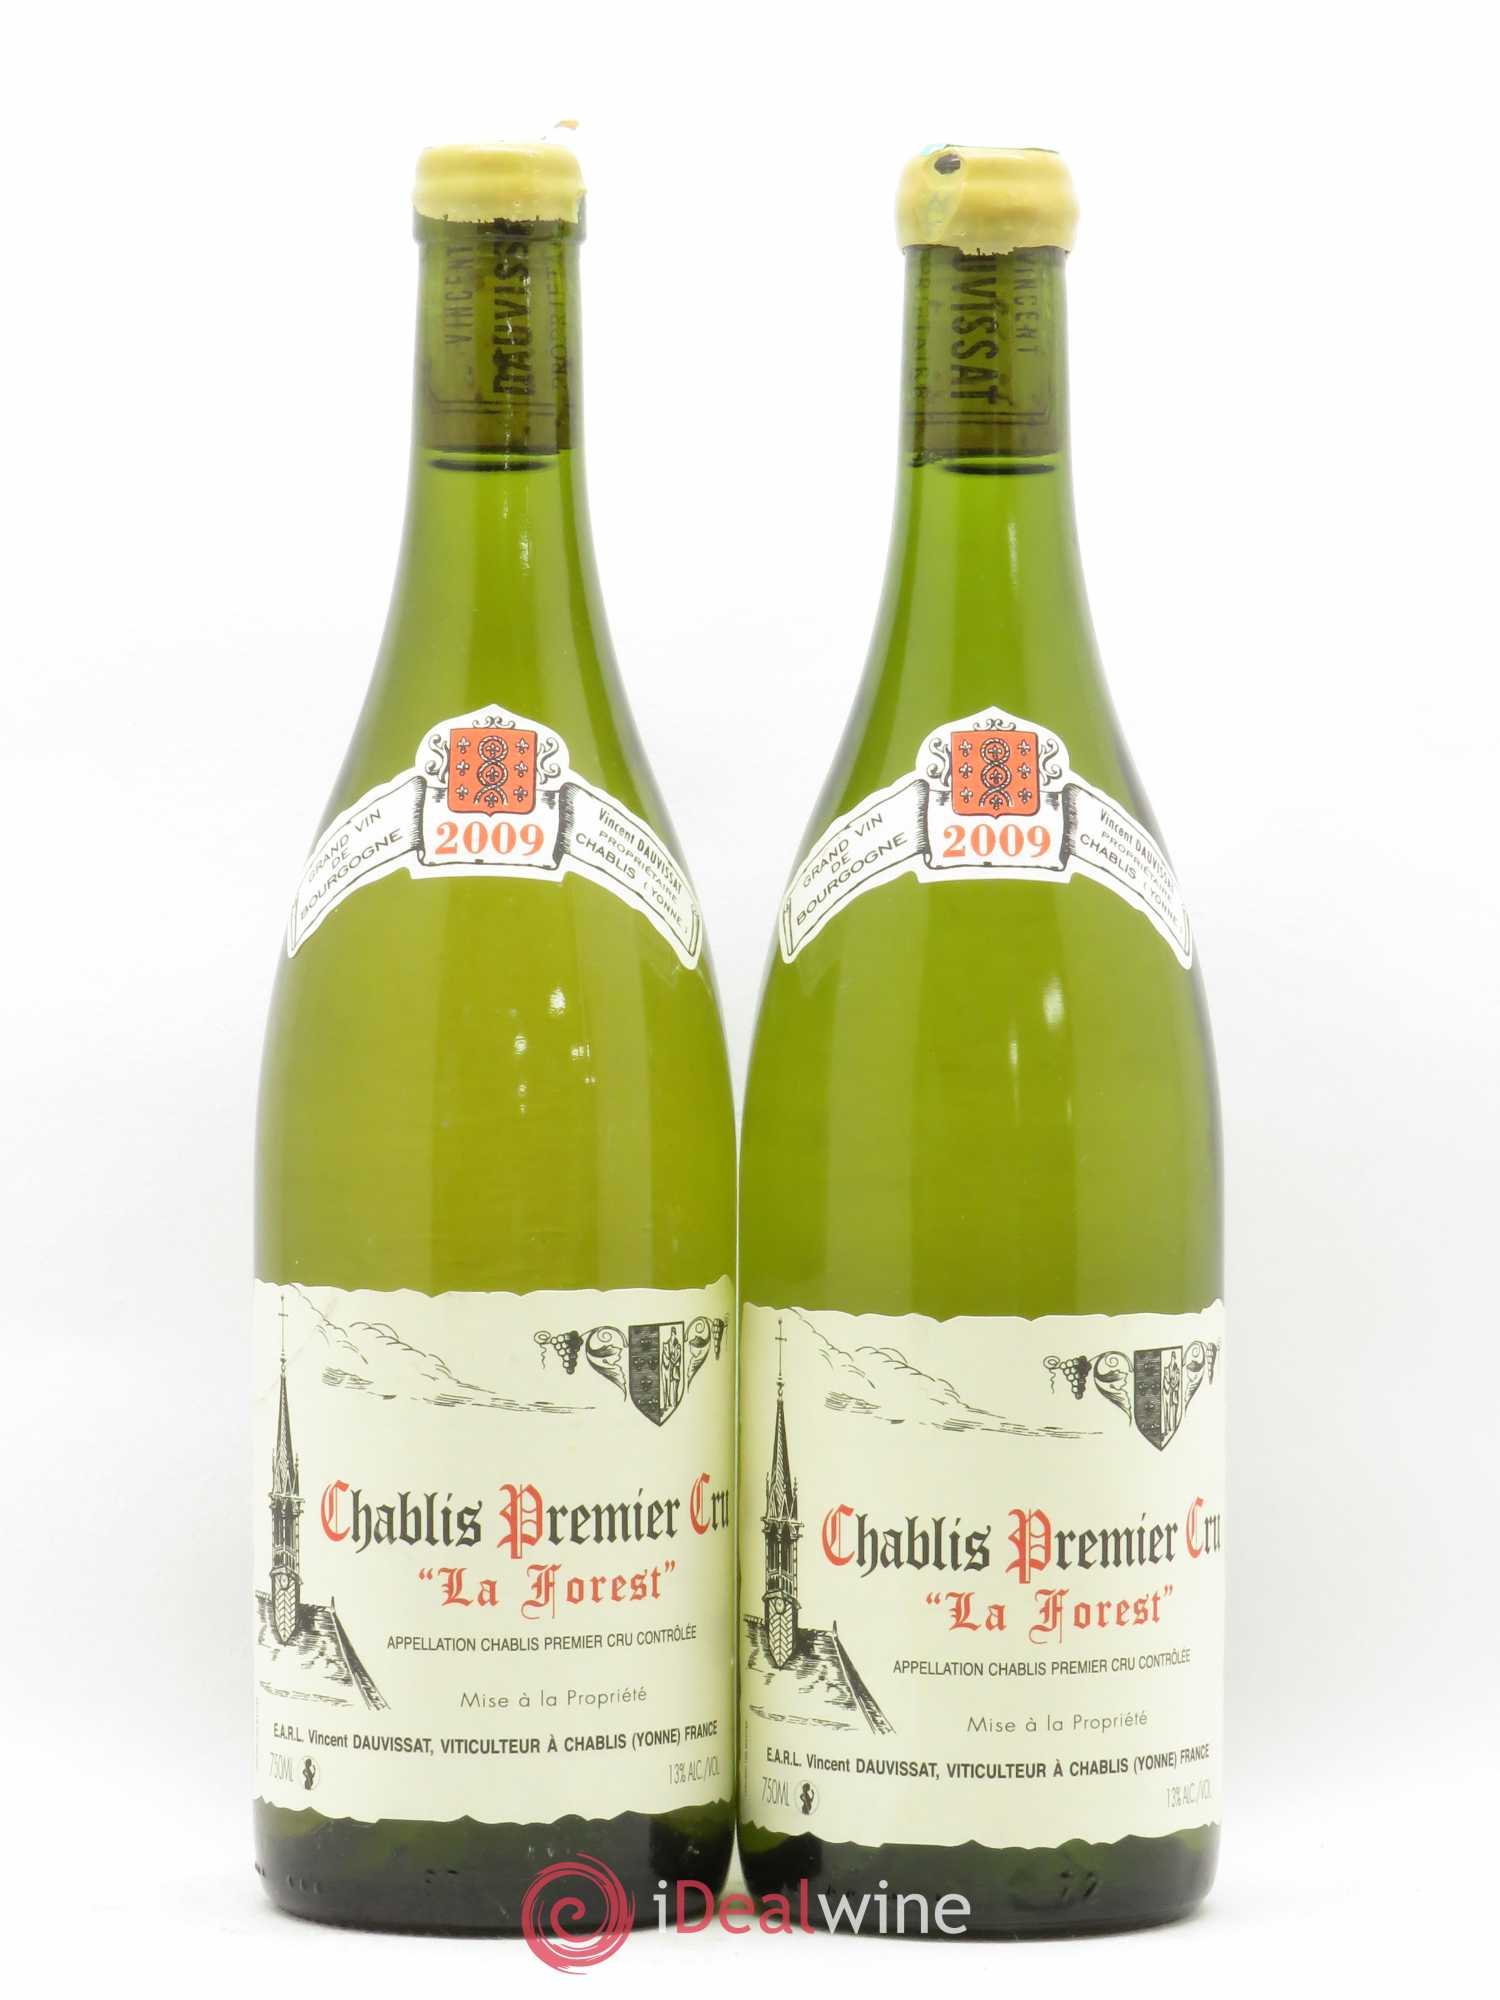 Chablis 1er Cru La Forest René et Vincent Dauvissat  2009 - Lot of 2 Bottles